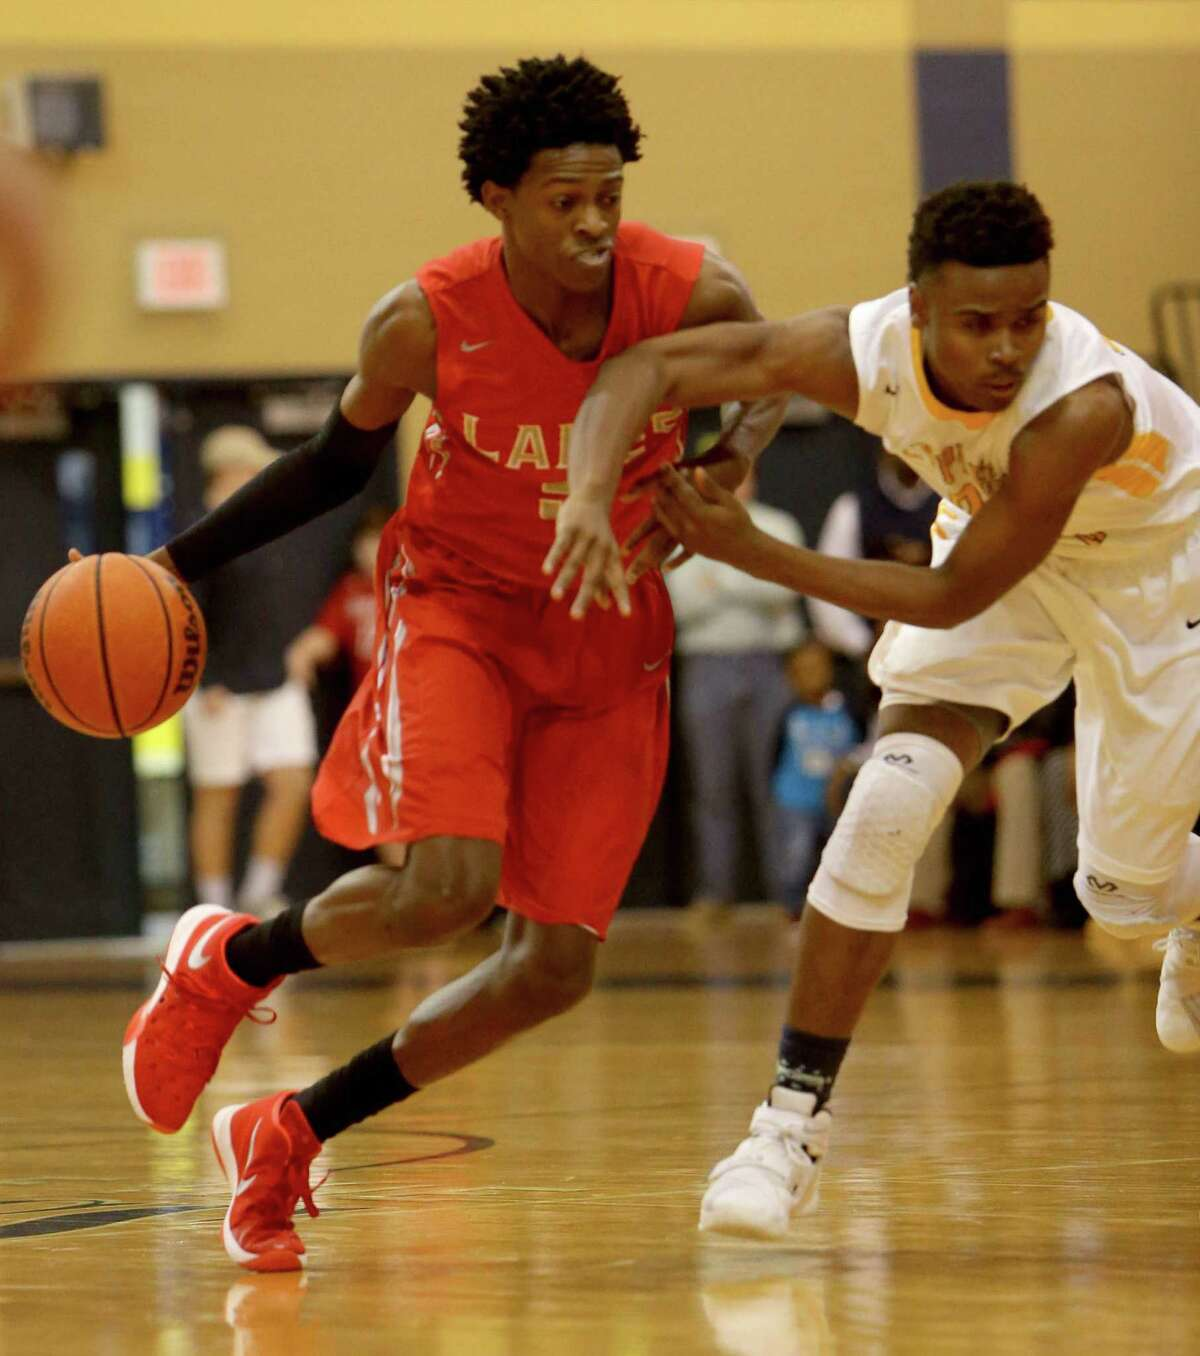 De'Aaron Fox (5), of Cypress Lakes, is guarded by Micheal Tate (23), of Cypress Ranch, during the first quarter at Cypress Ranch High Friday, Jan. 29, 2016, in Cypress, Texas.